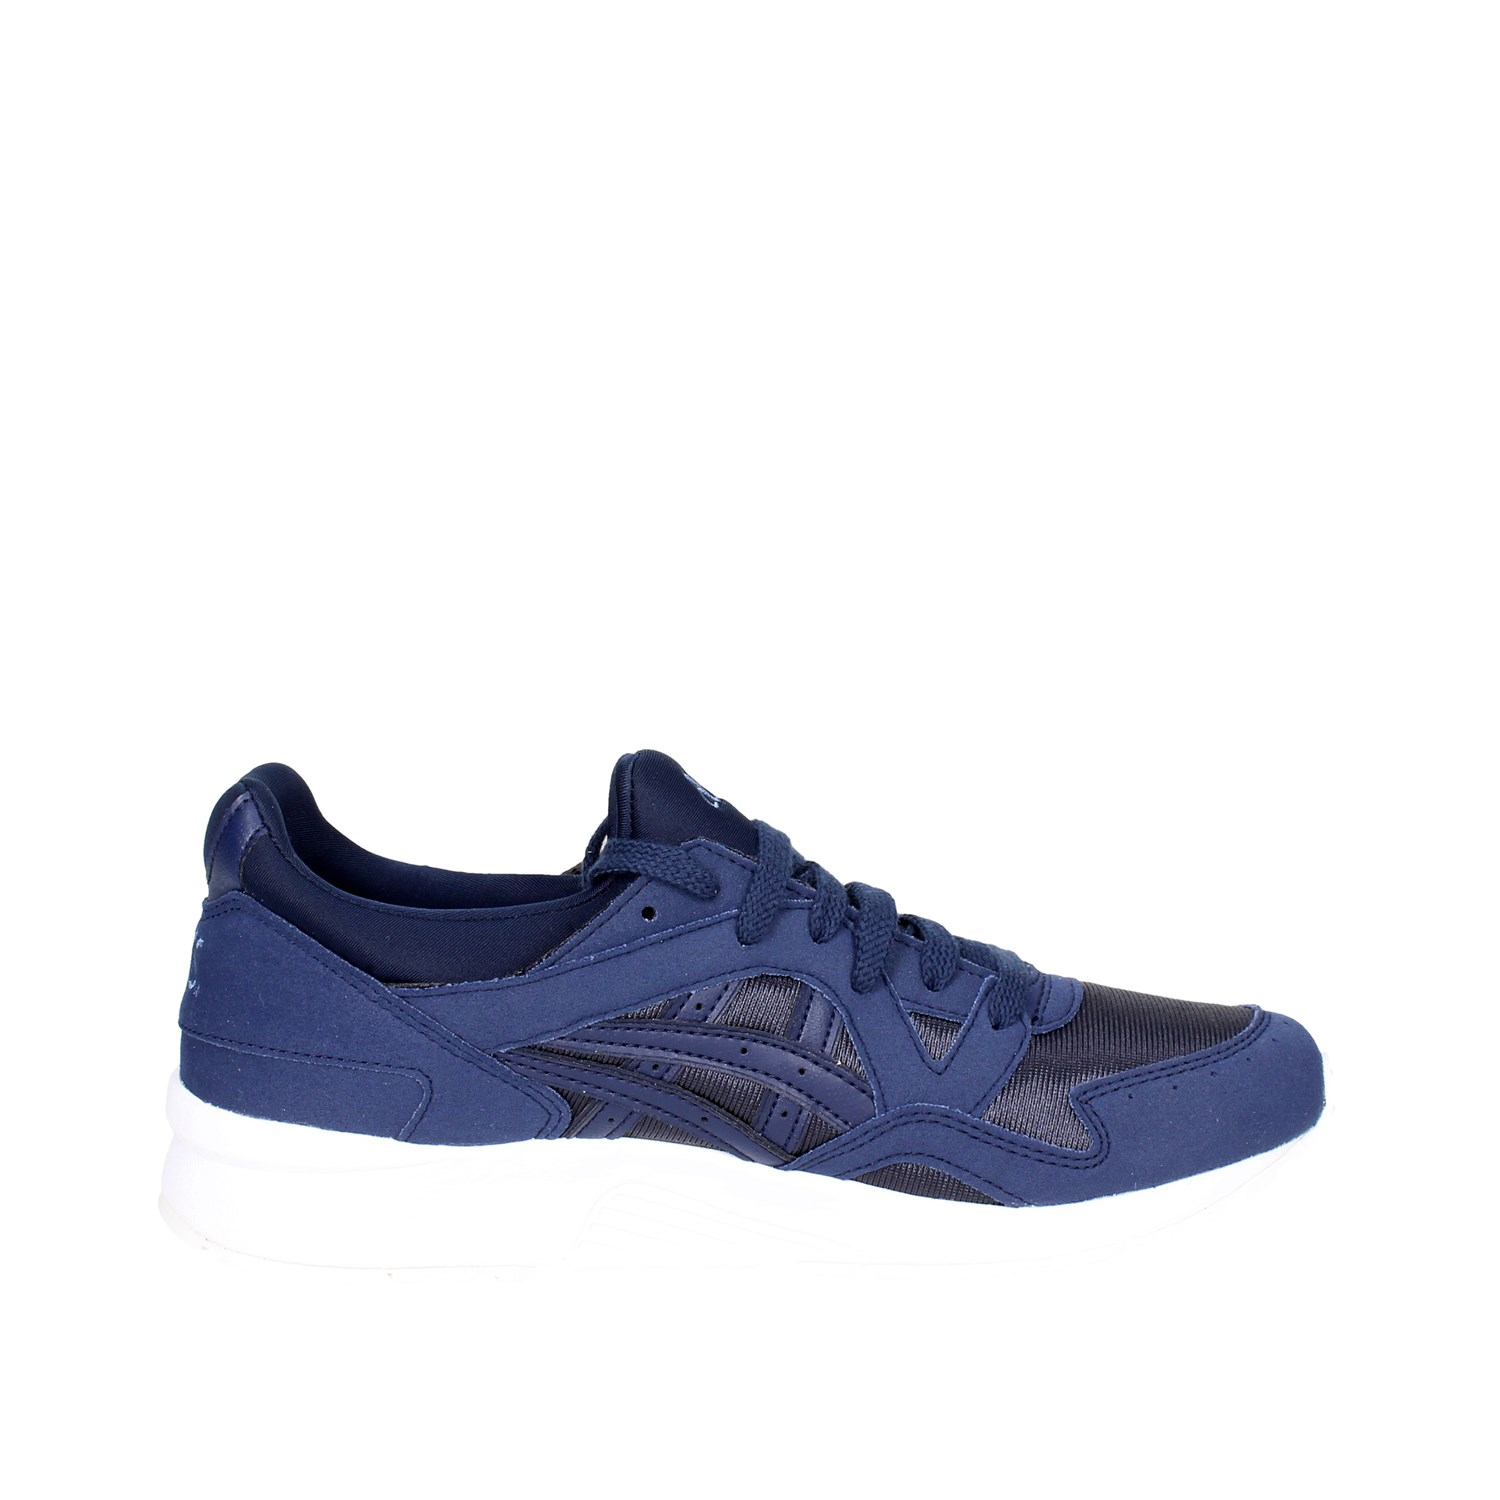 5858 C541n Sneakers inverno Blu Asics Autunno Bassa Donna qZ5AAc